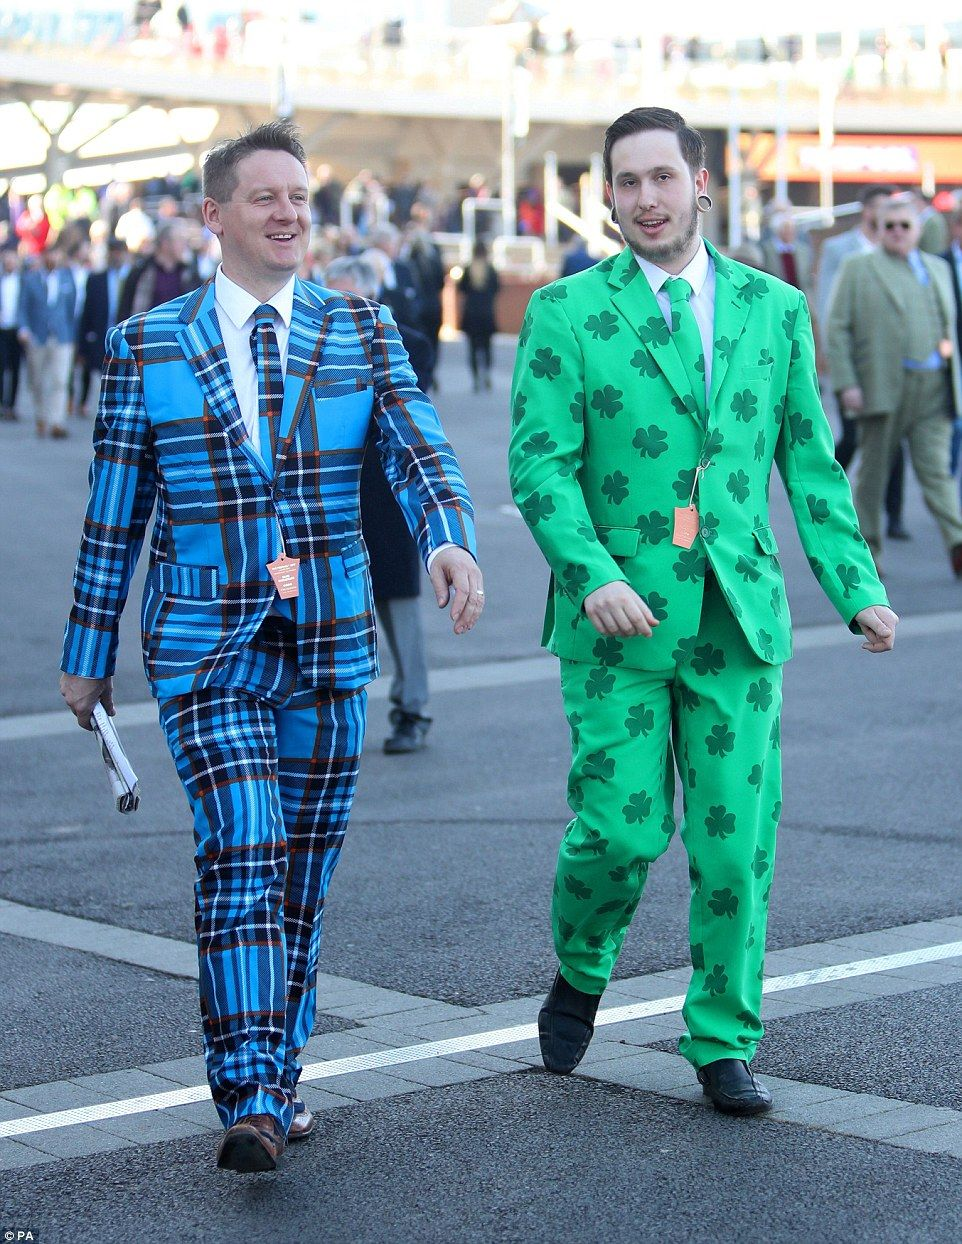 Go bold or go home: Two men arrived for Ladies Day in some very outlandish  suits